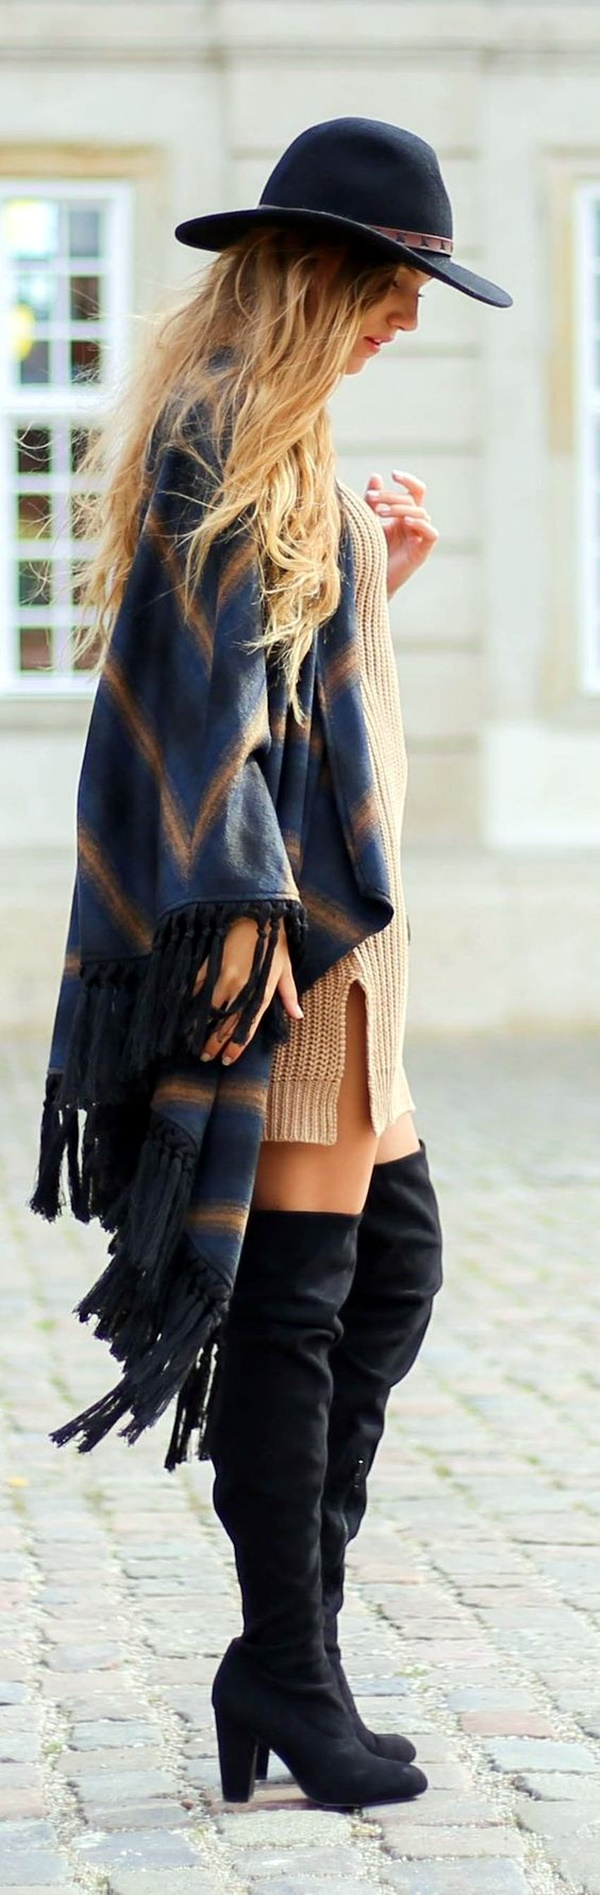 winter-outfits-for-teens-1